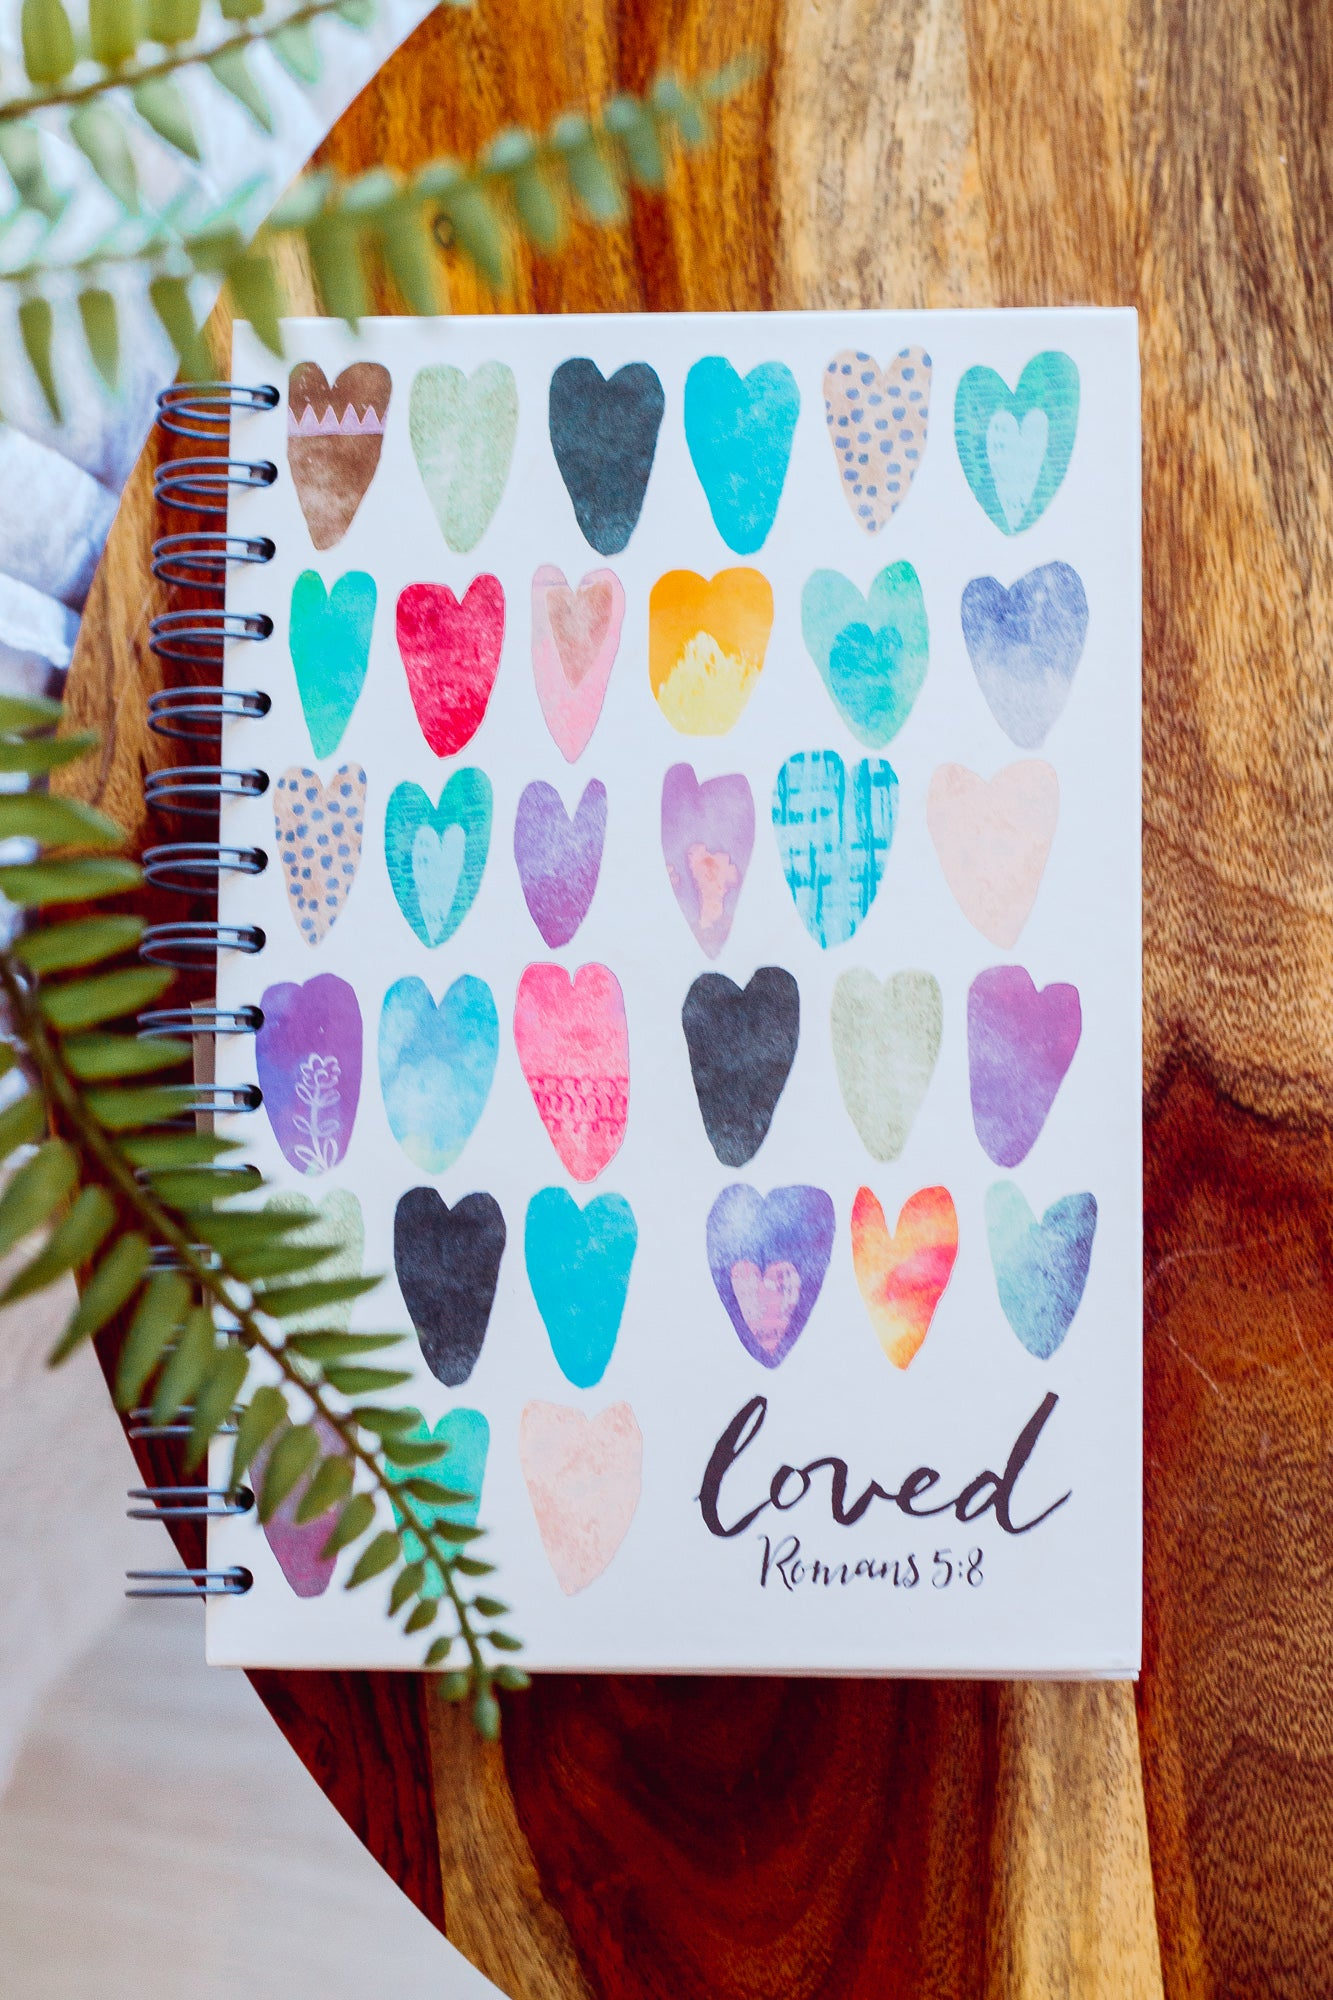 Loved Hearts Journal